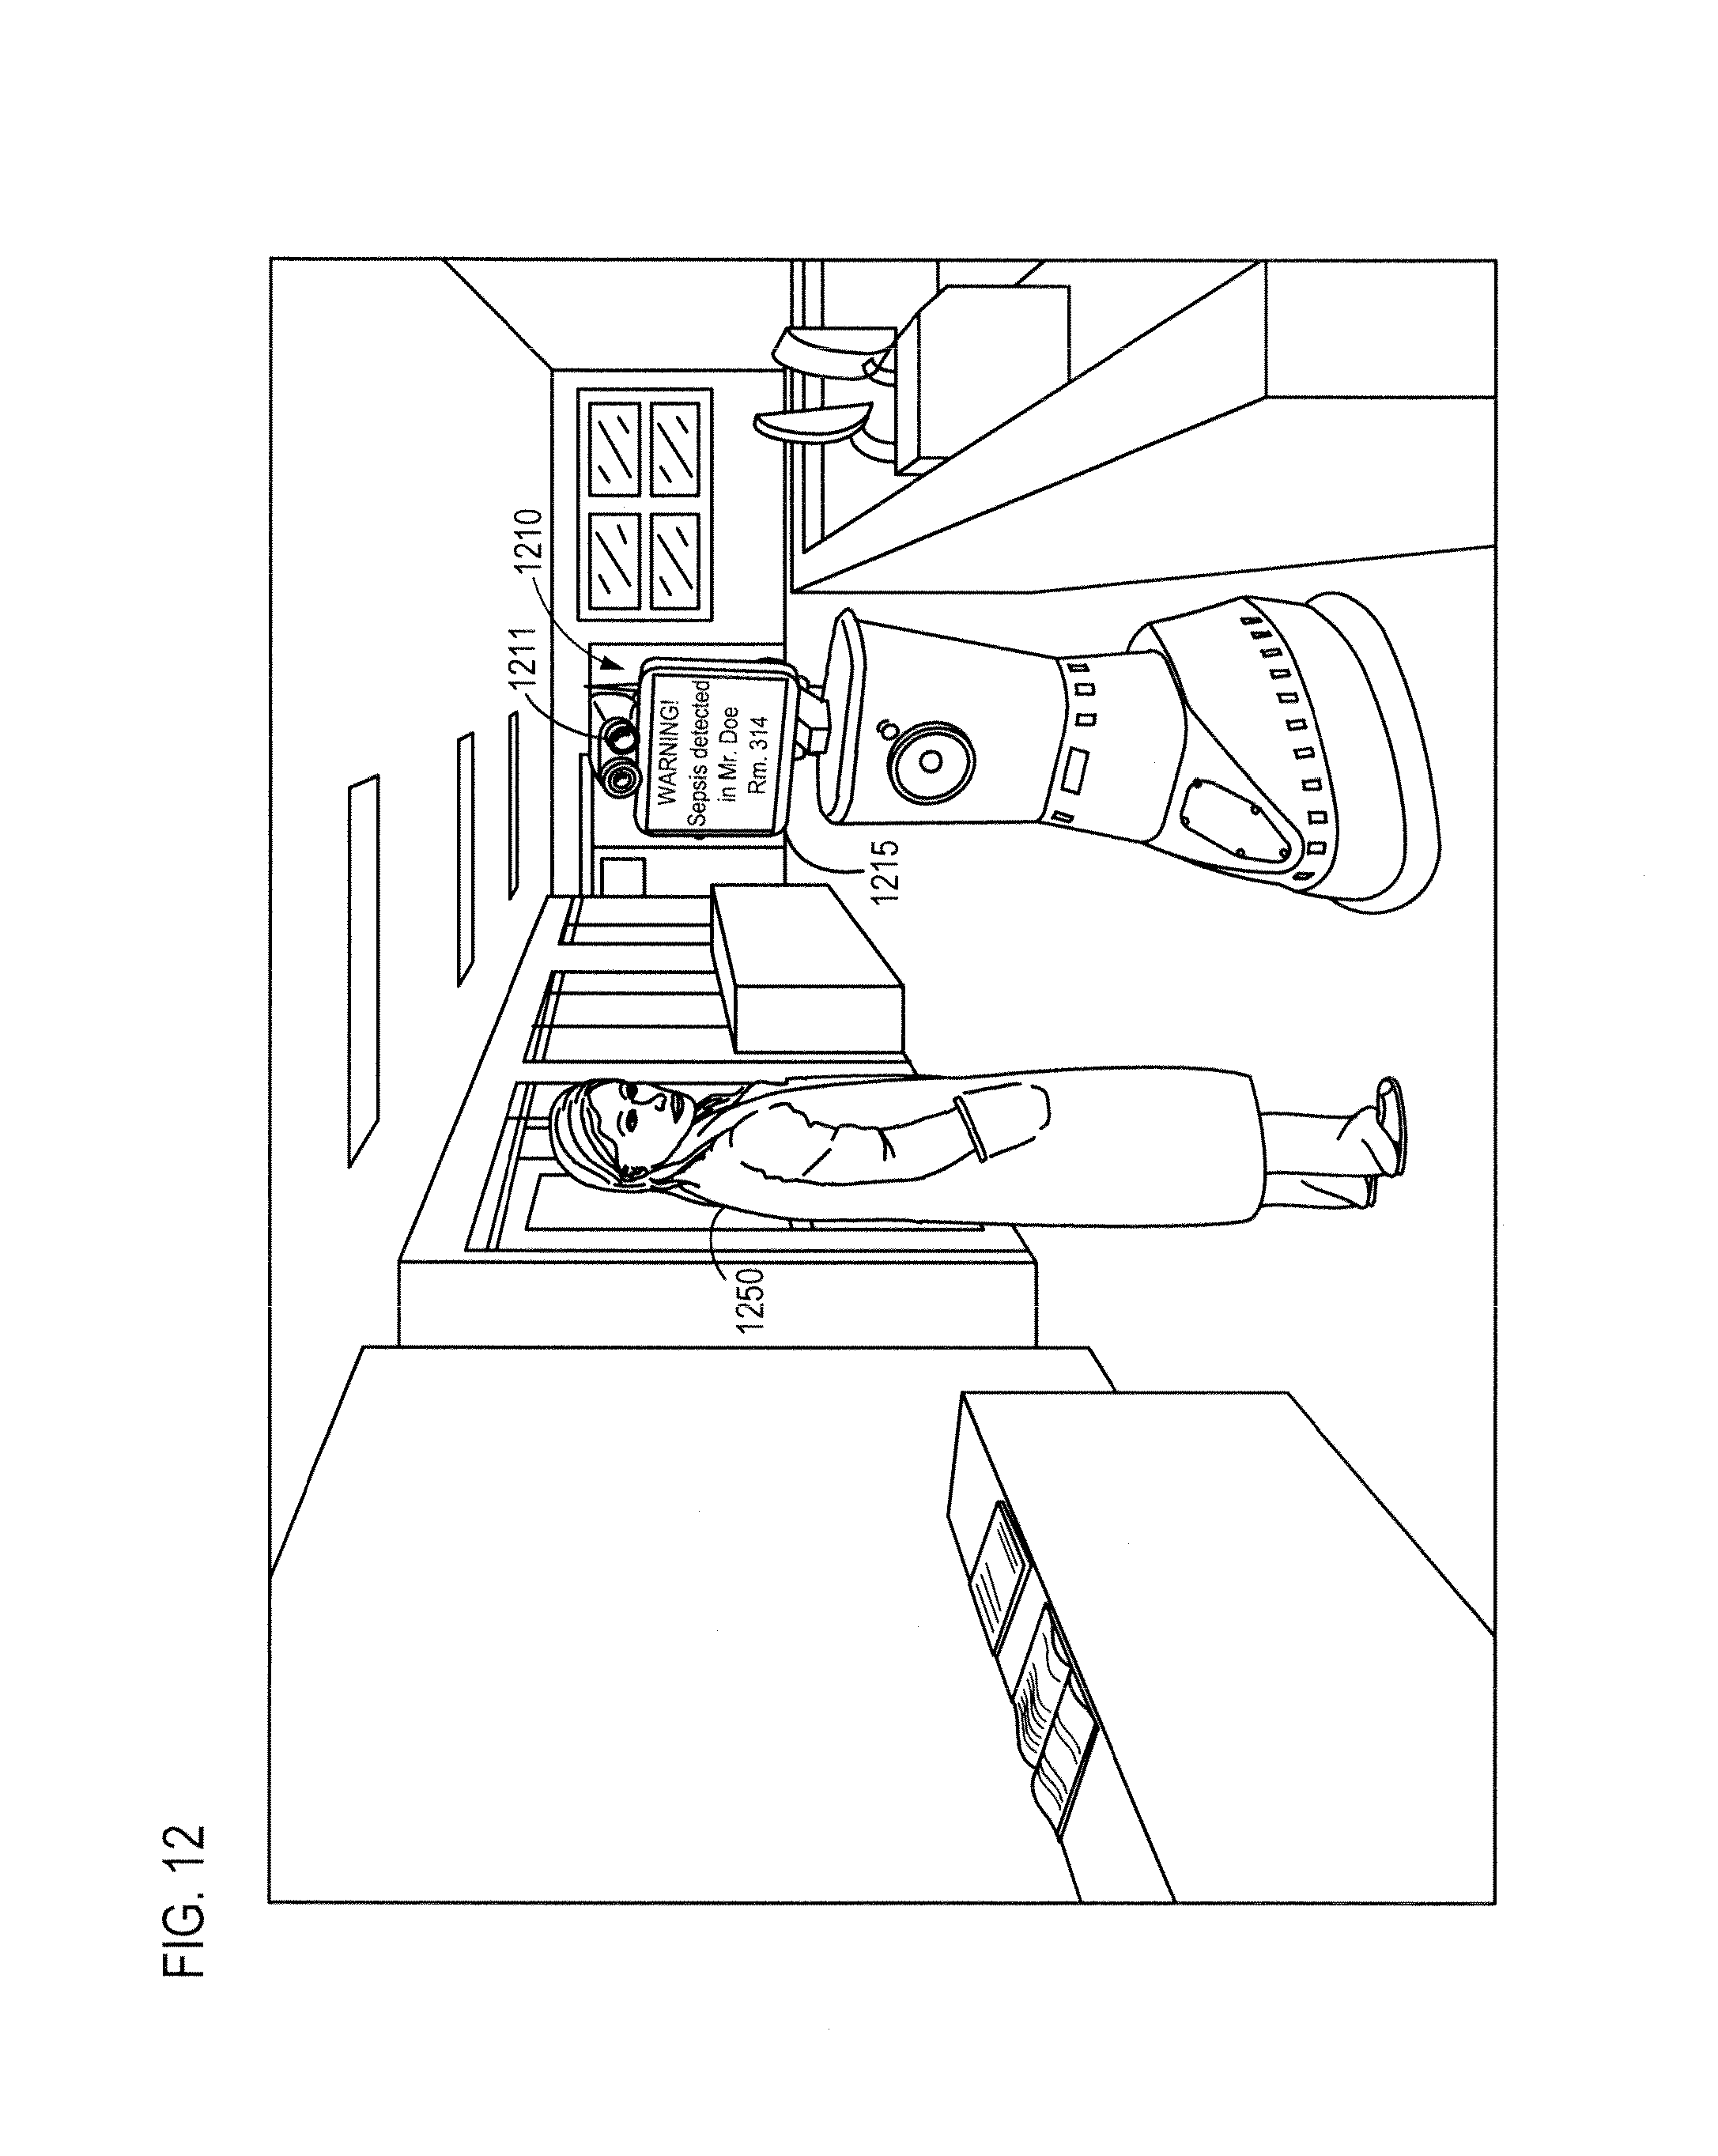 Pin Diagram Of Ic 741 Polytechnic Hub Patent Us 9974612 B2 0 Petitions